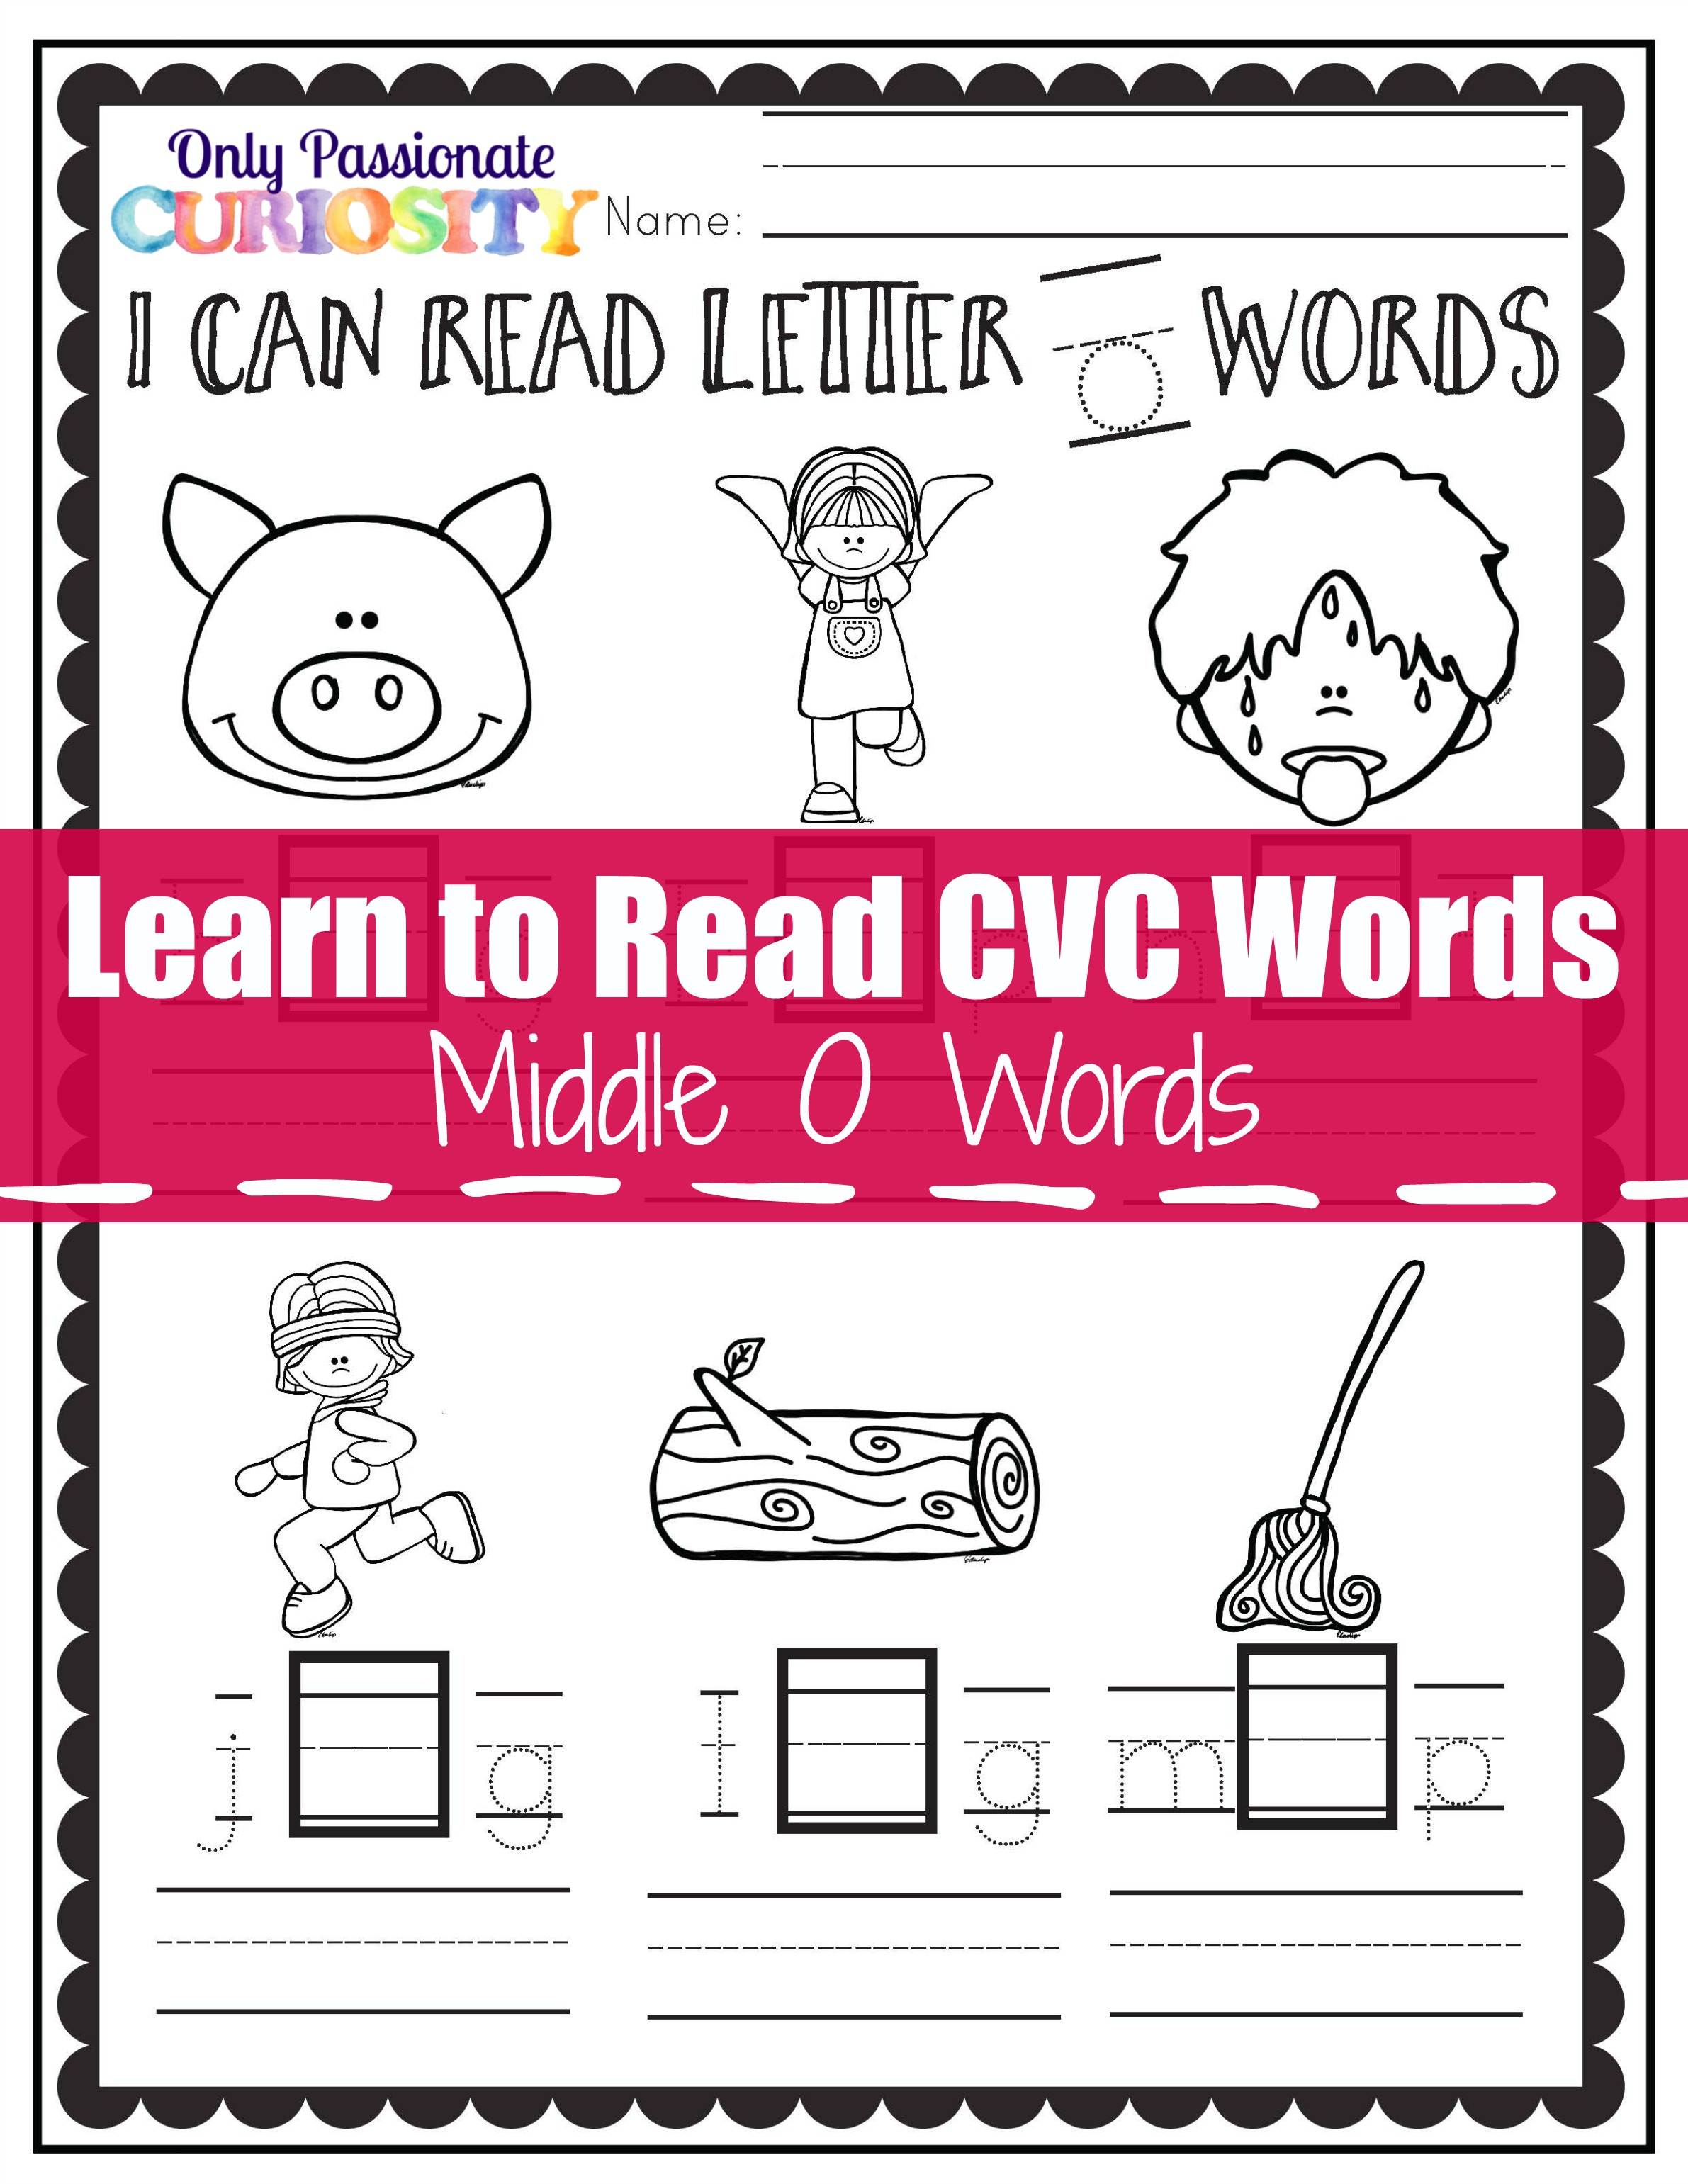 I can read CVC words: Middle O See and Write - Only Passionate Curiosity